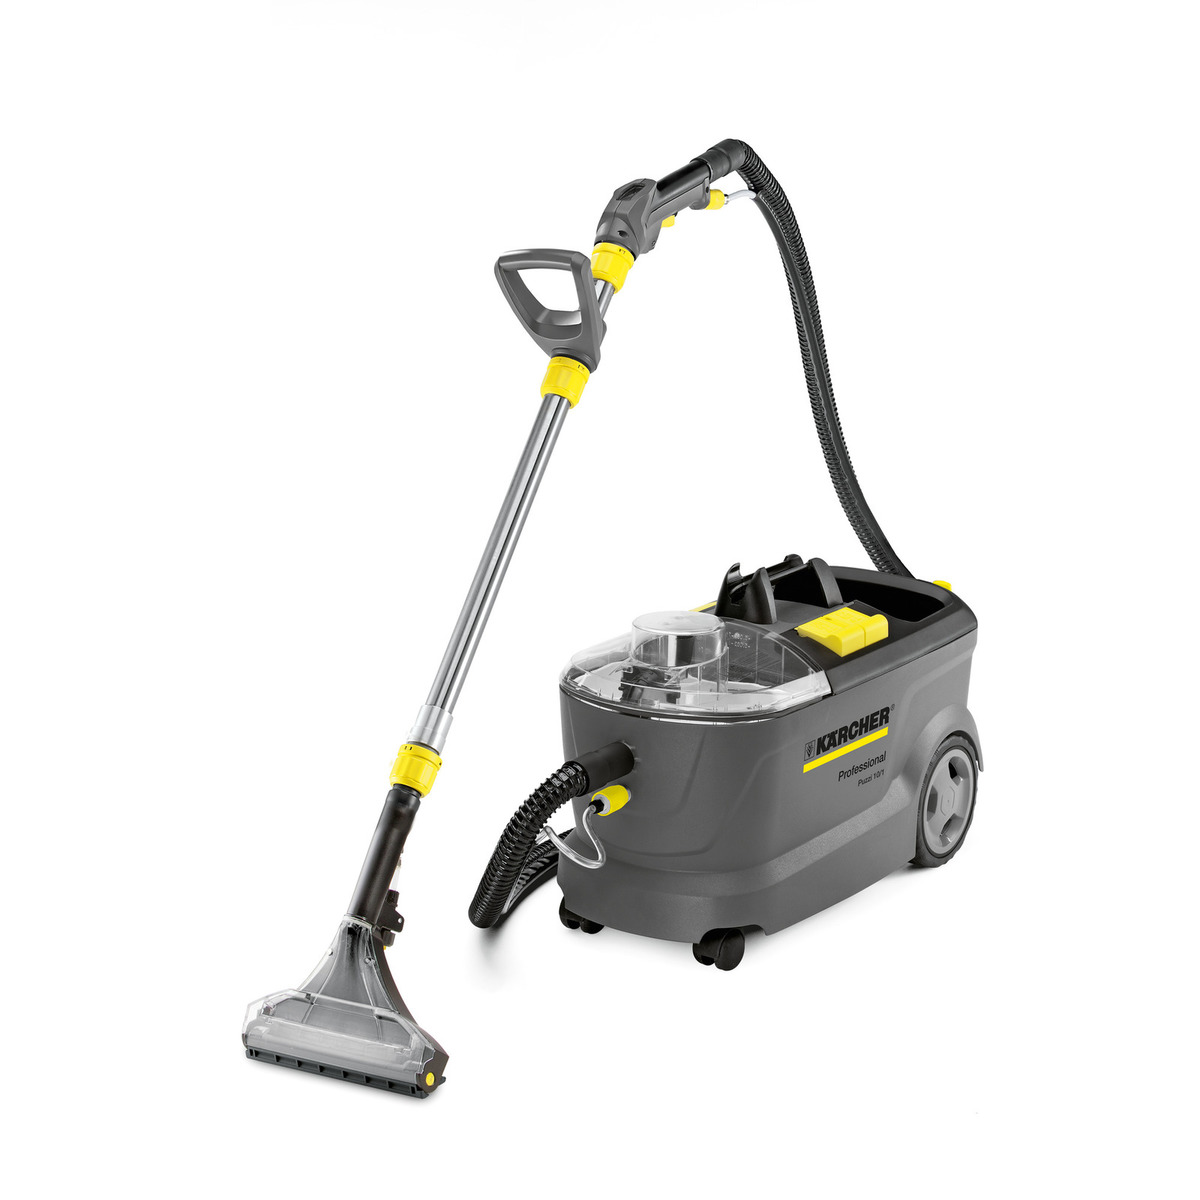 Karcher Carpet & Upholstery Spray Extraction Cleaner Puzzi 10/1